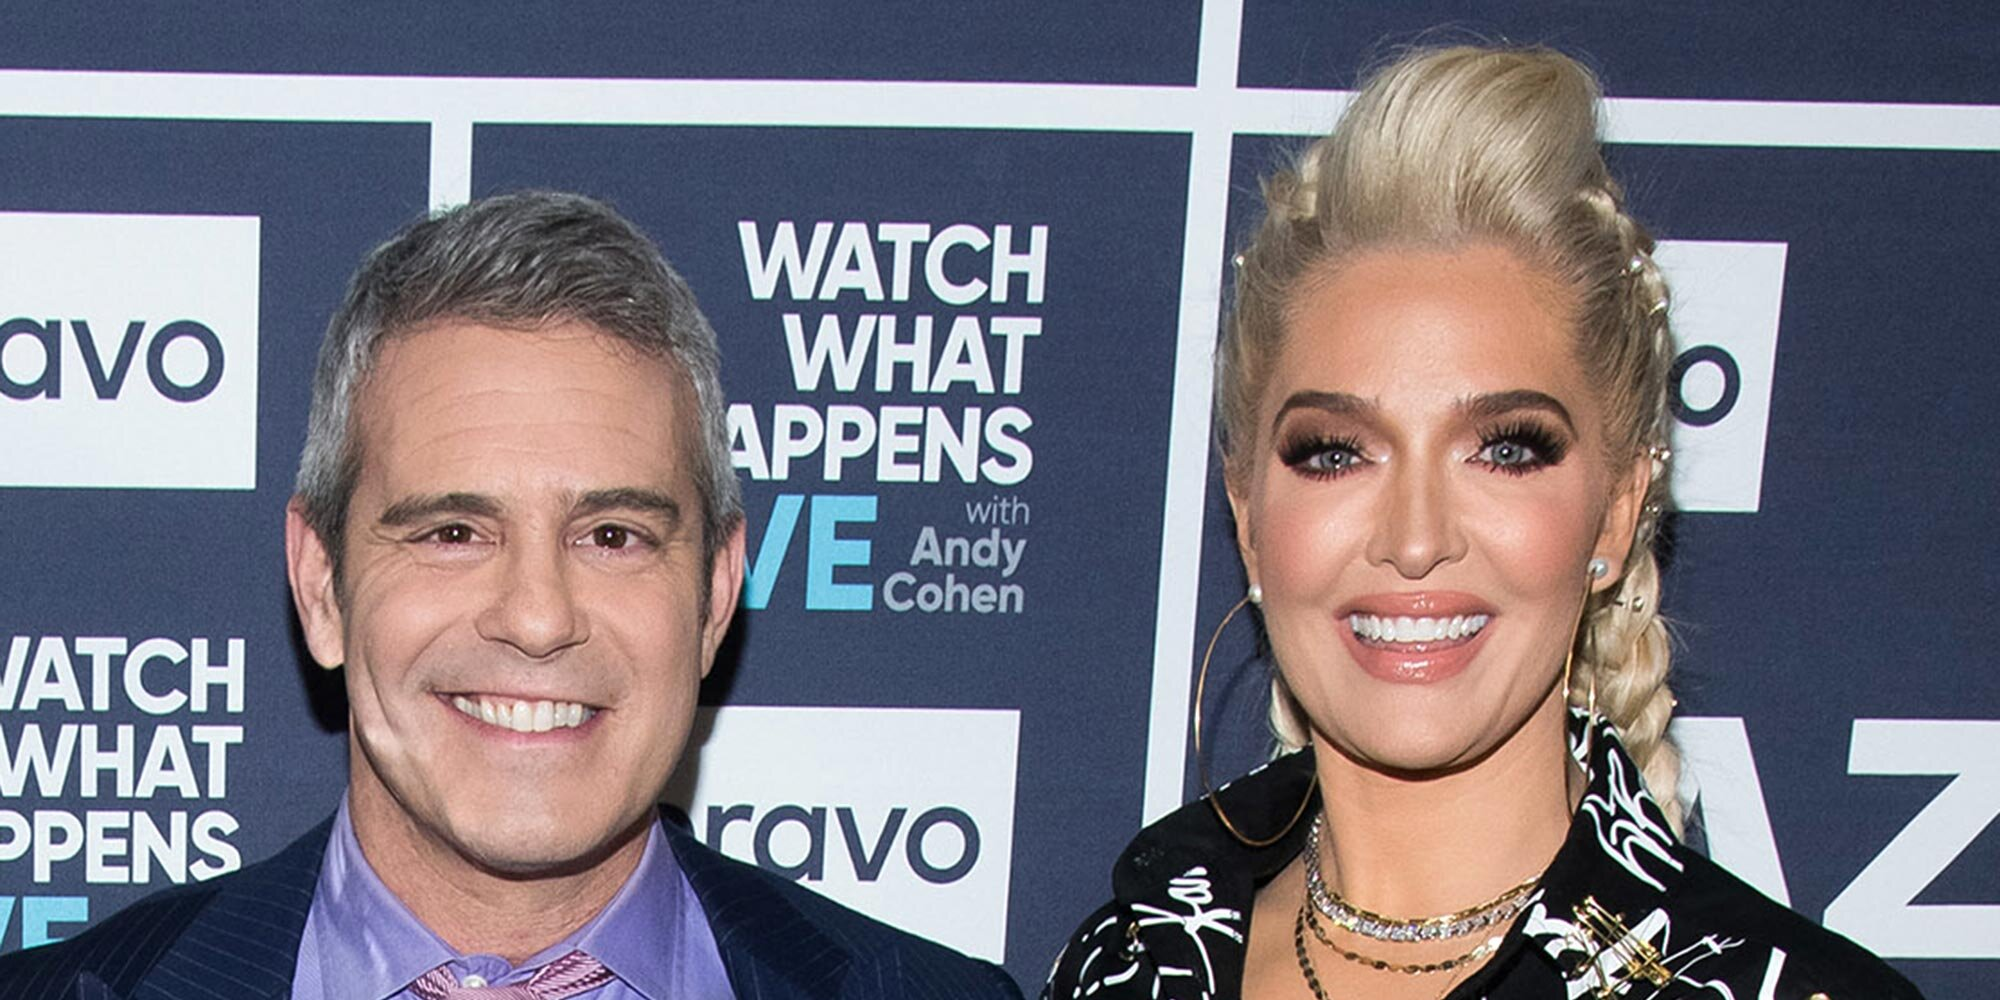 Andy Cohen dismisses Erika Jayne documentary as 'questionable'